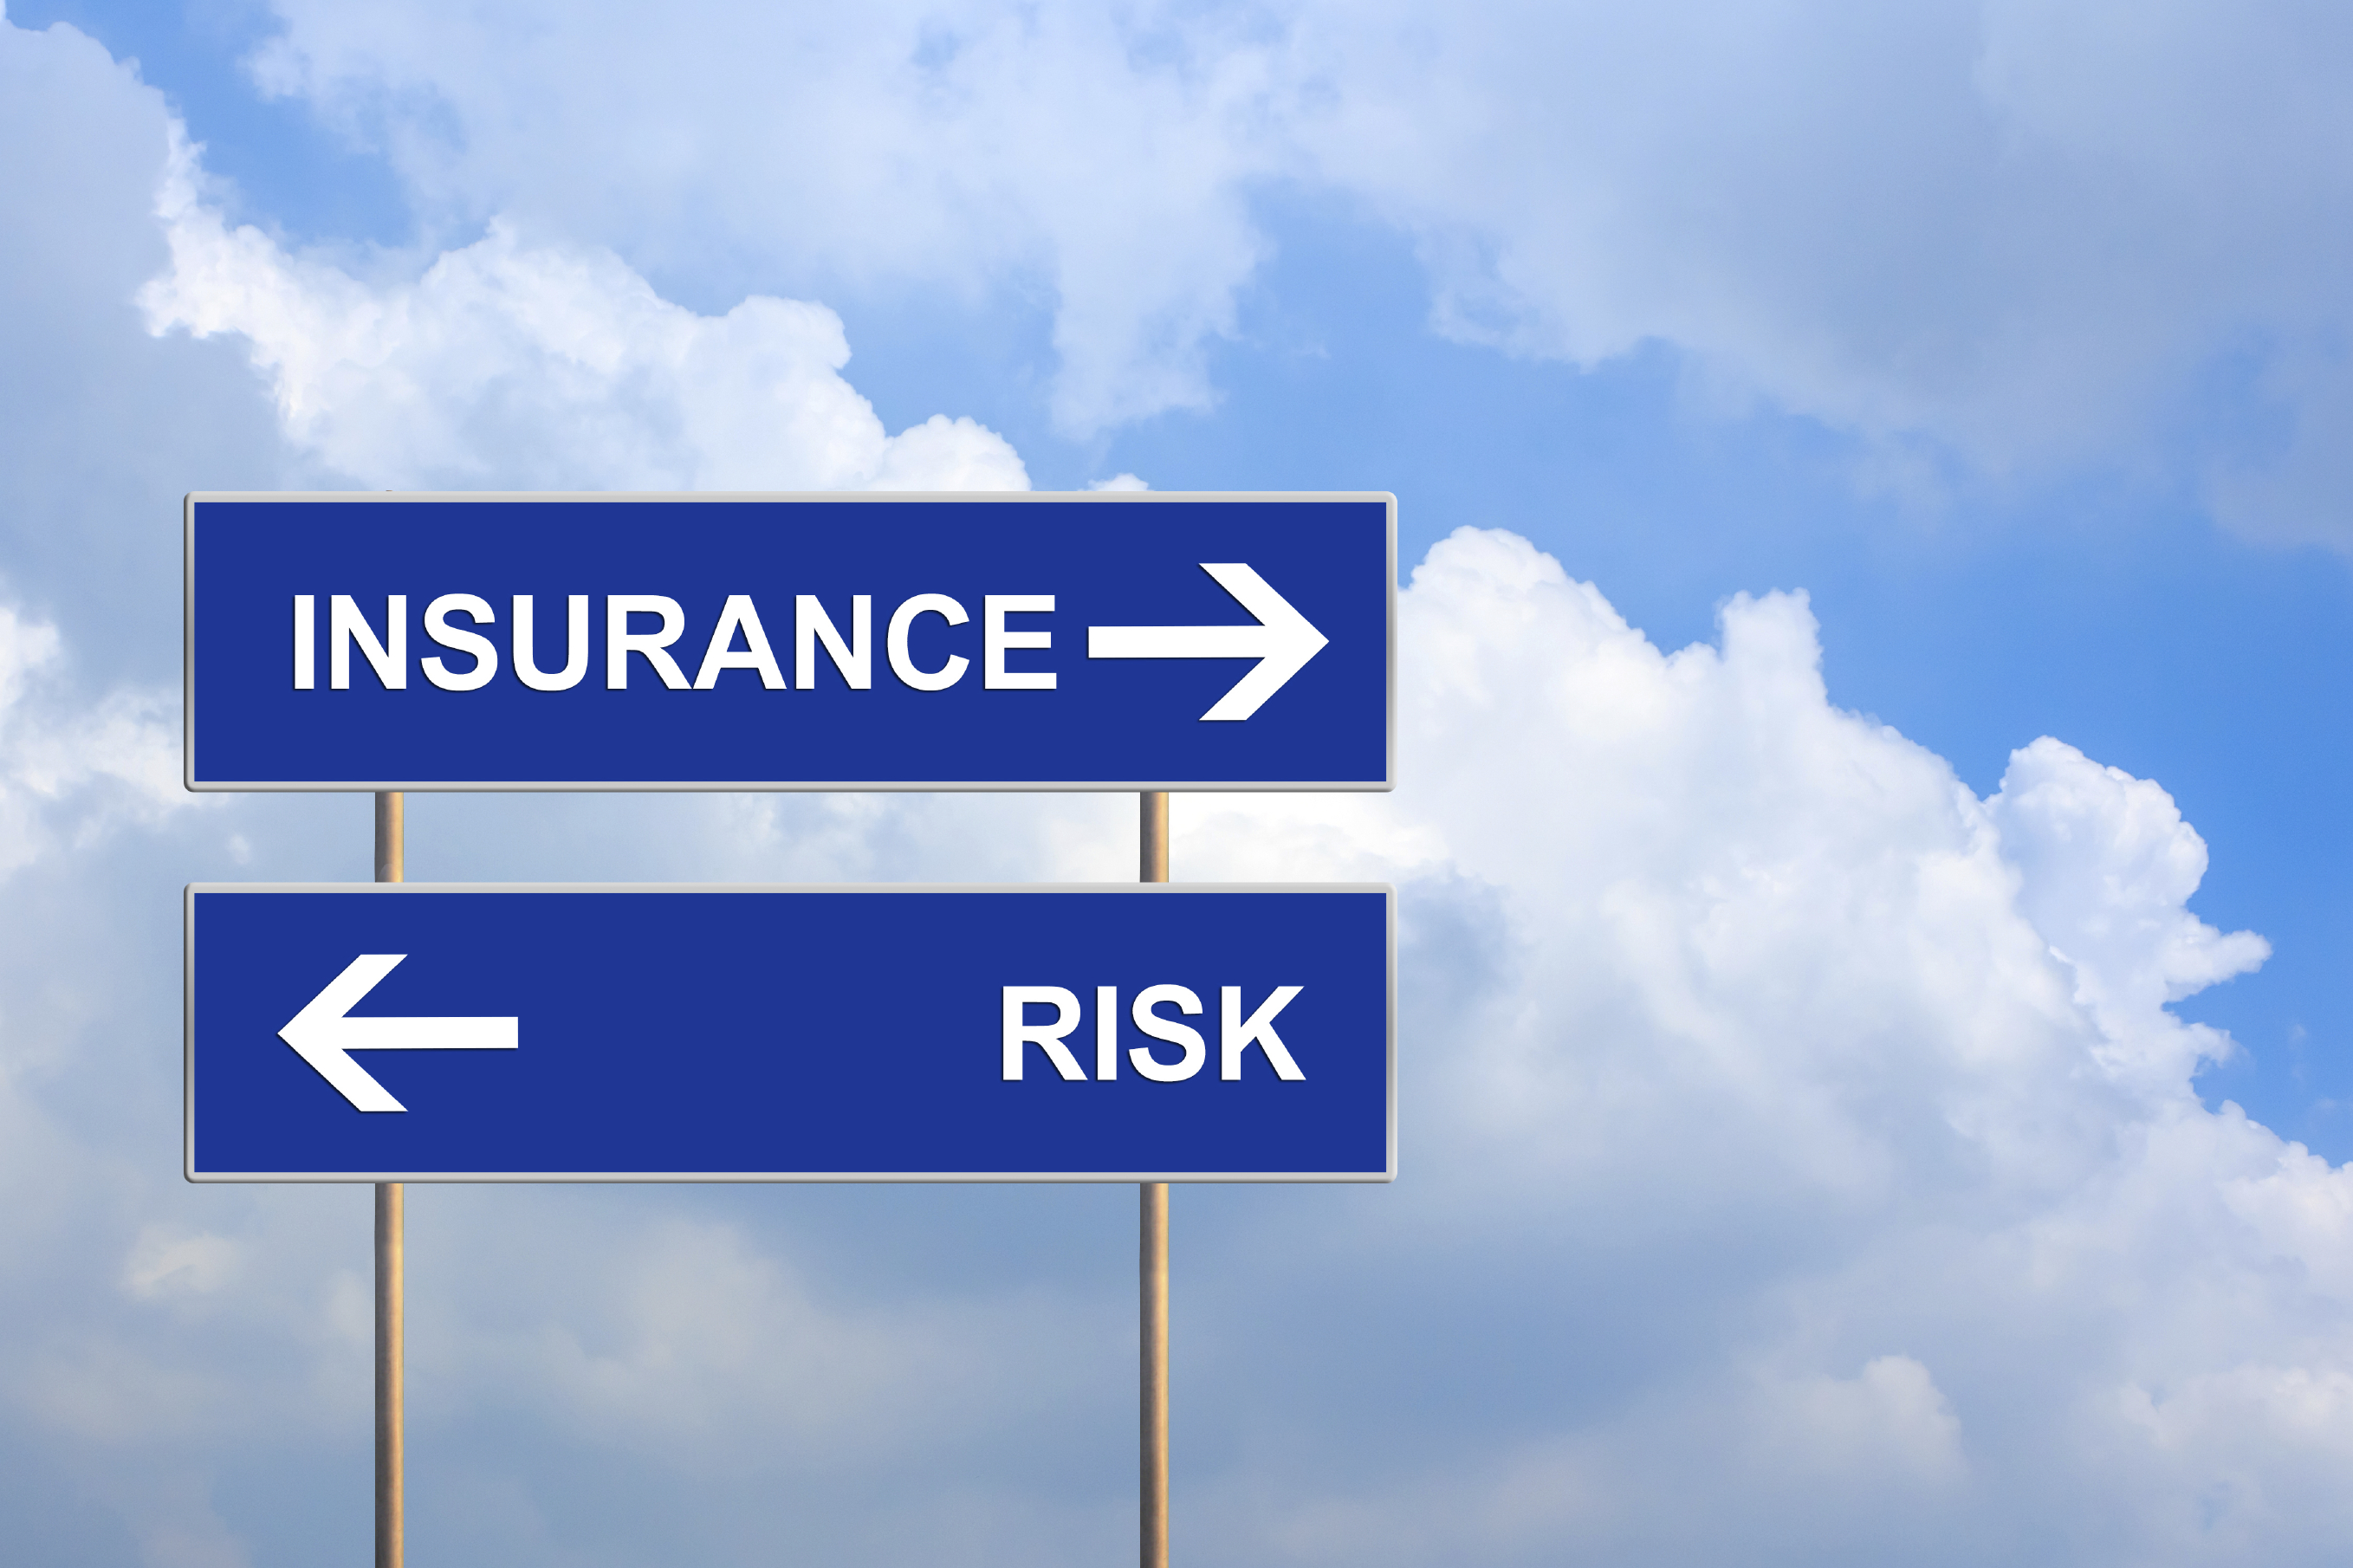 What to consider in deciding whether these types of insurance are needed